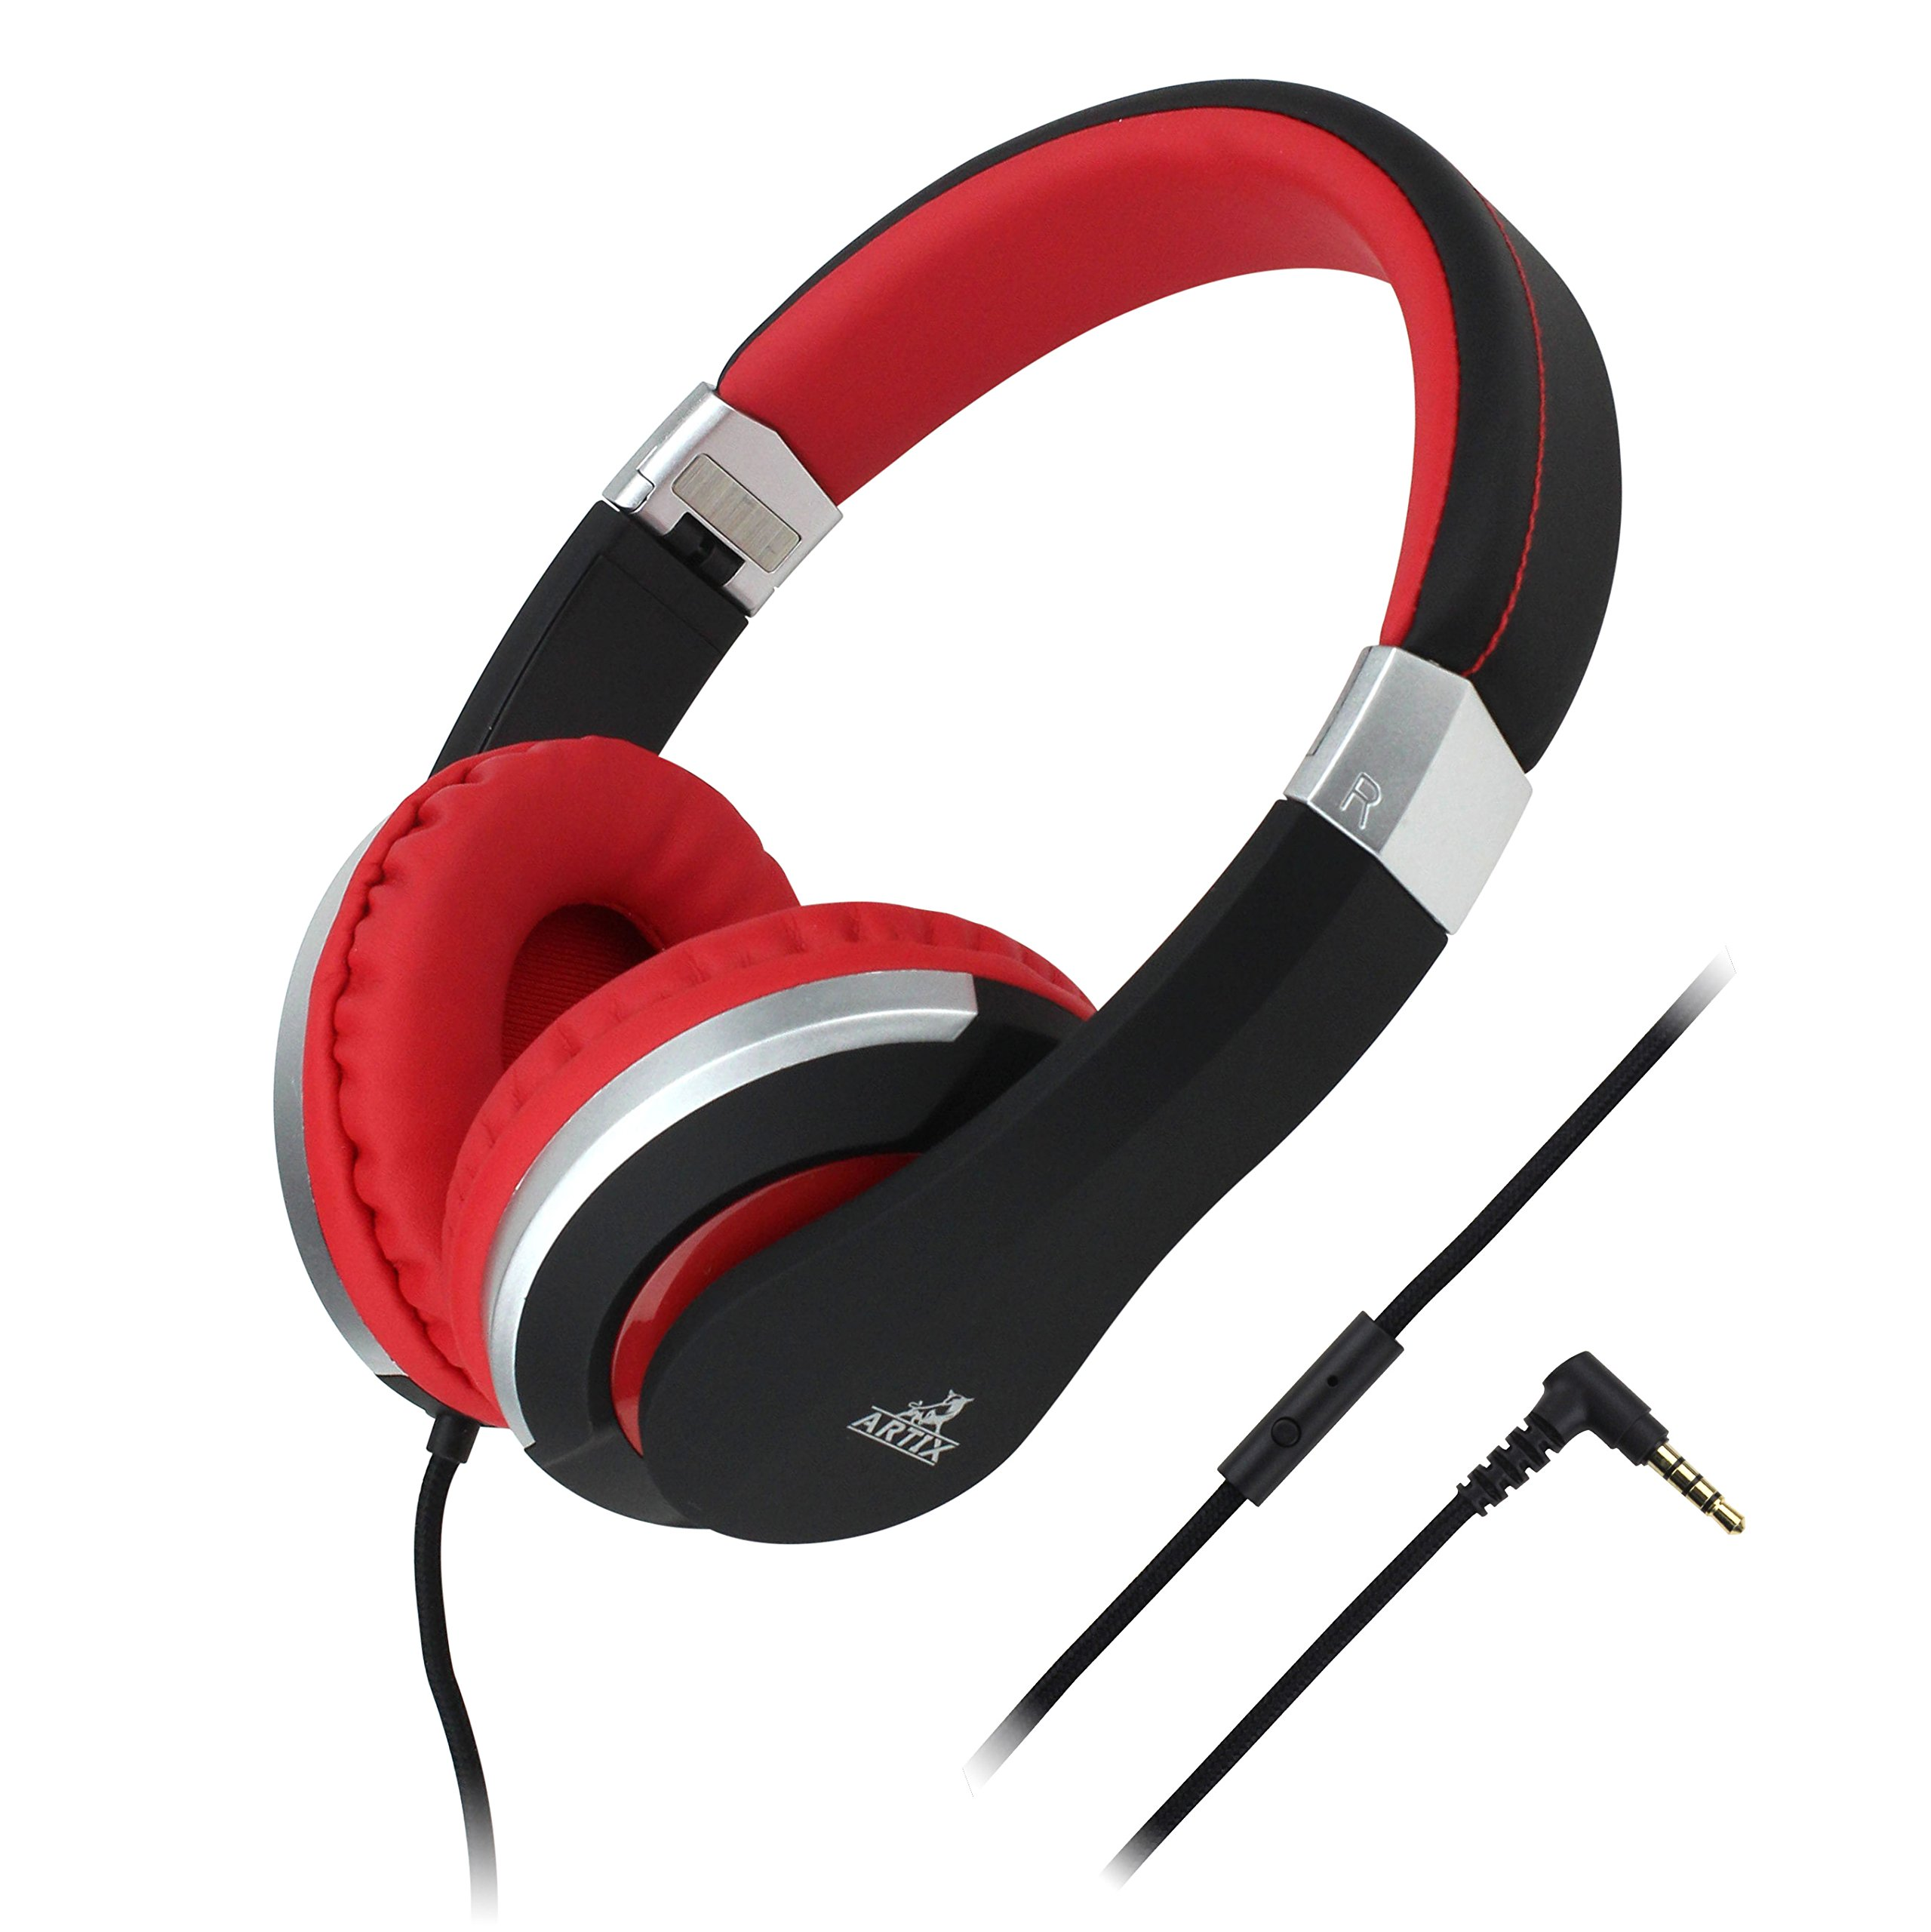 Artix CL700 On-Ear Foldable Adjustable Tangle-Free Wired Headphones, Compact Stereo Earphones with In-line Microphone and Controls for Children, Teen, Adult - iPhone iPad, Android Samsung Black & Red by ARTIX